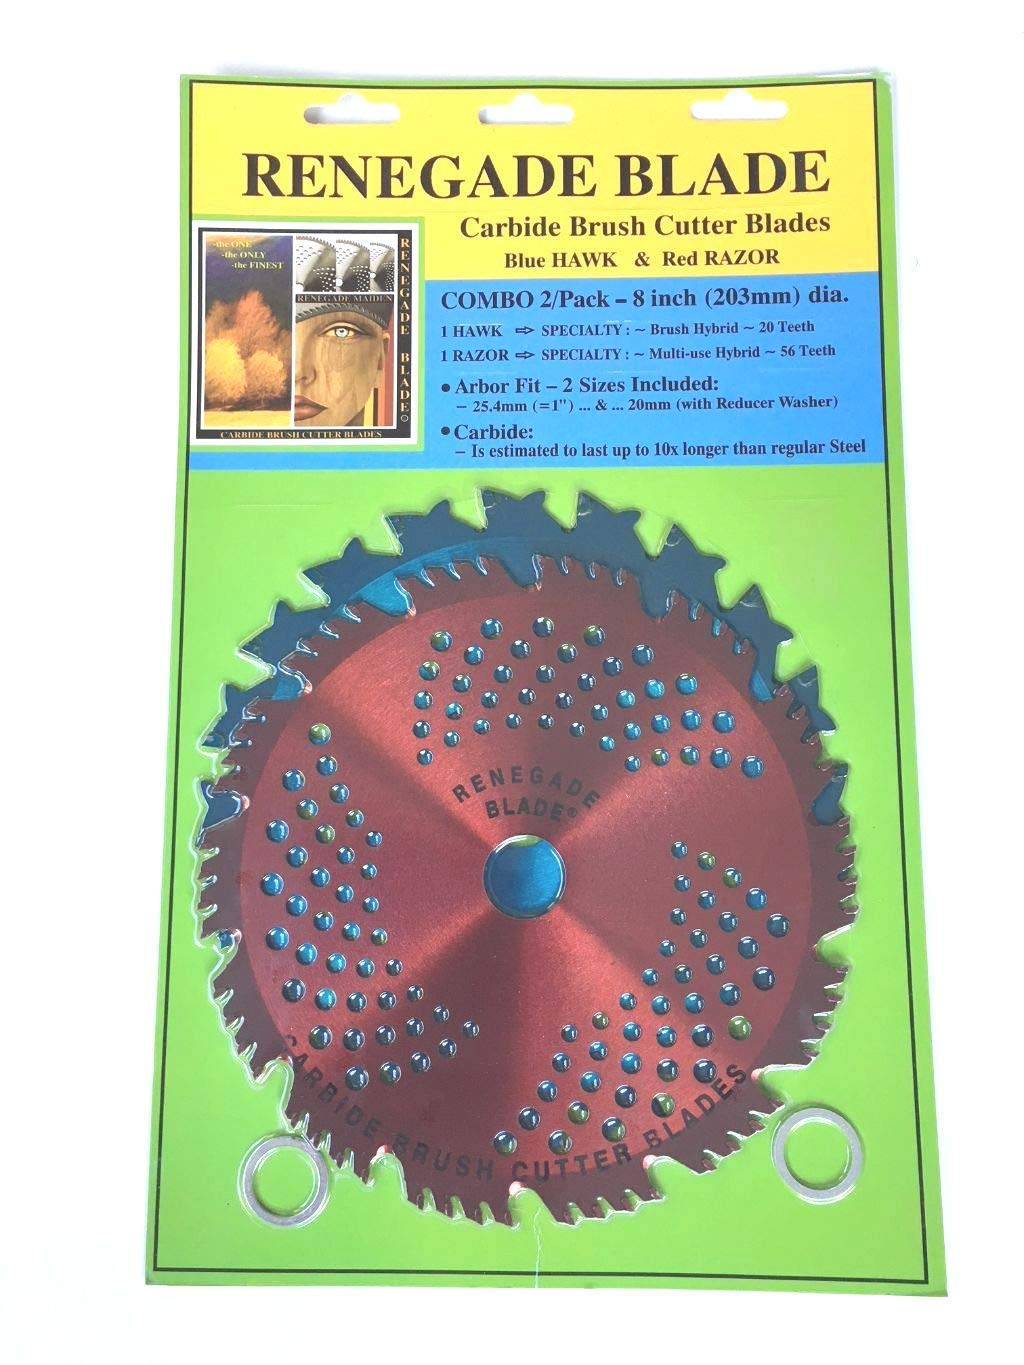 "Renegade Blade 2pk-8""-20t/56t Combo Pack - (1) 20 Teeth Blue Hawk (1) 56 Teeth red Razor - Hybrid Pack GS1 Barcoded Shelf Hanging Blister Pack- Carbide Brush Cutter Blades, 203mm Dia."